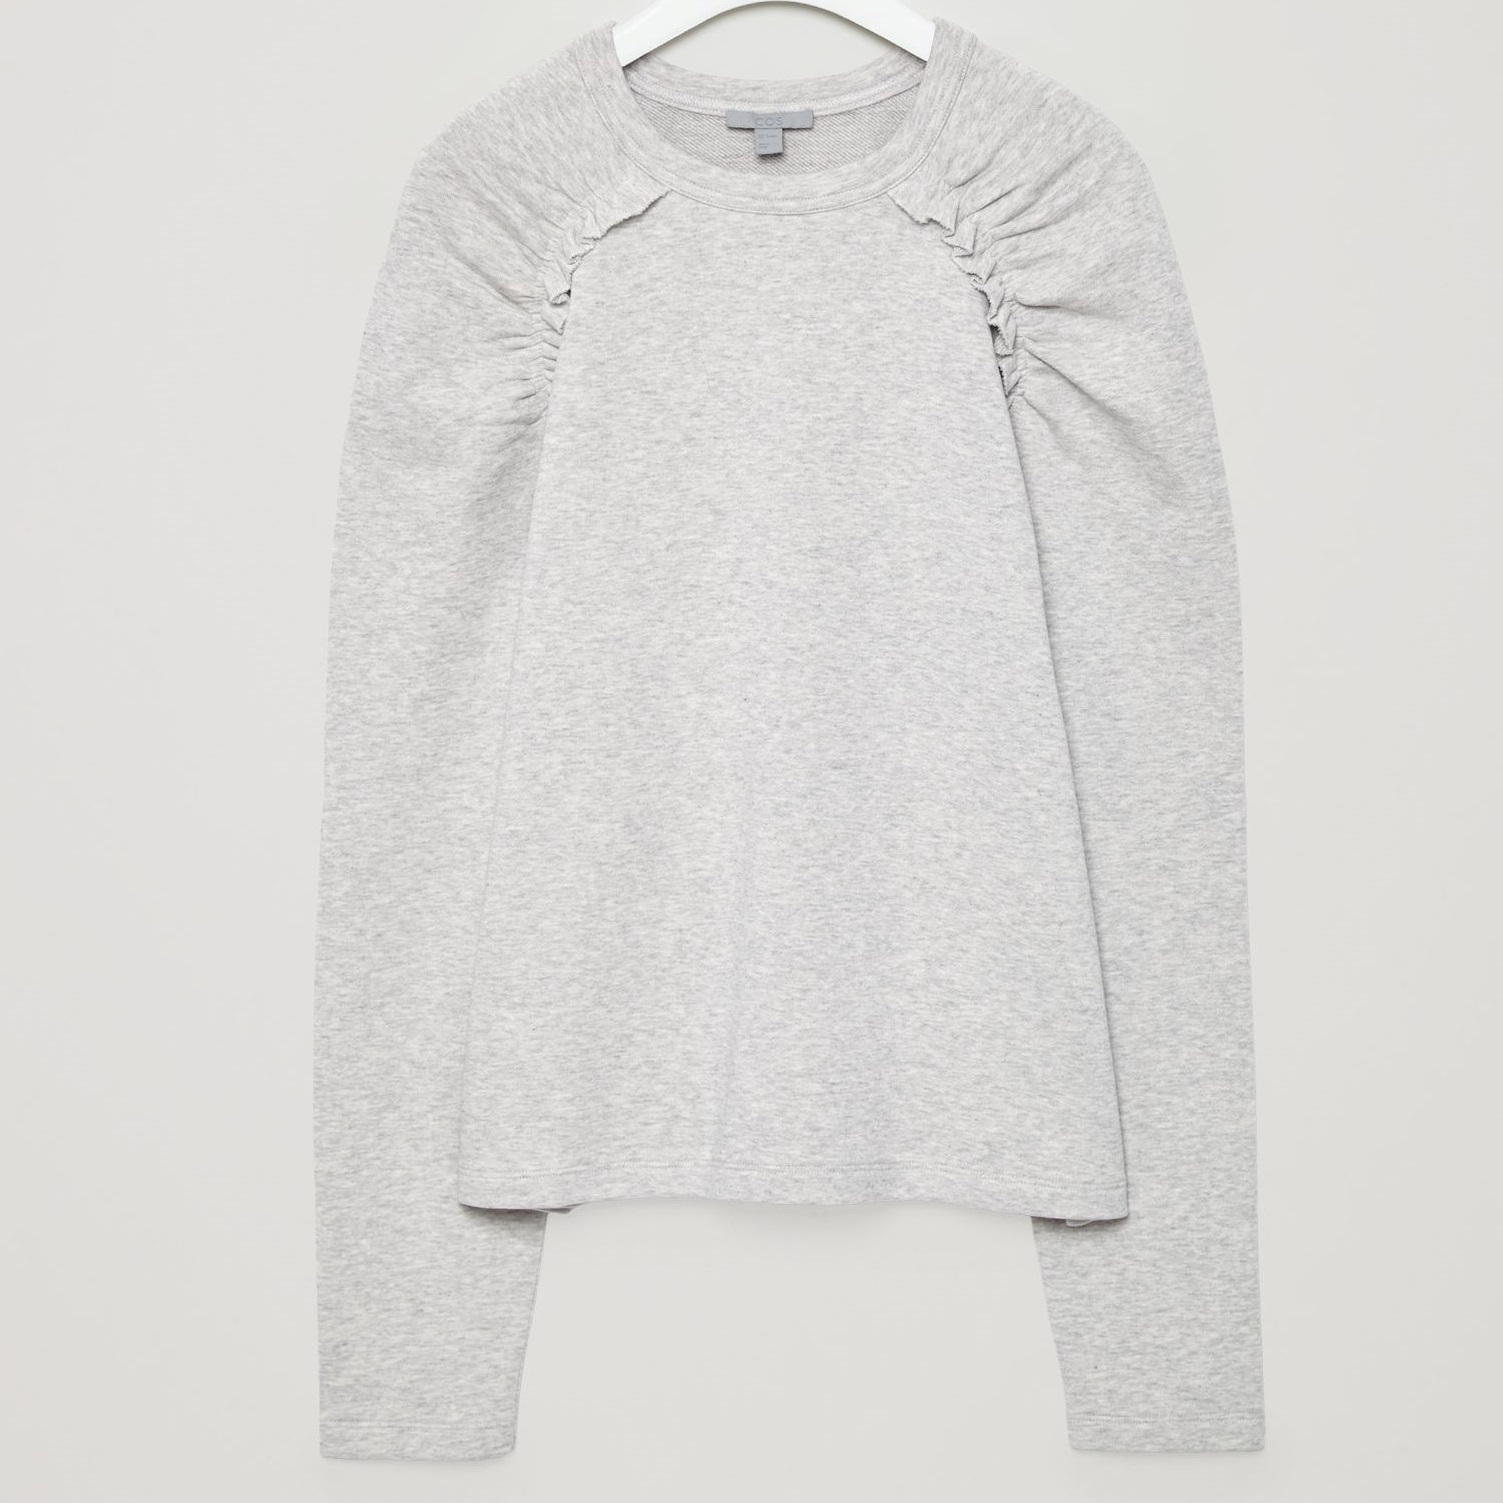 """COS""SWEATSHIRT WITH FRILLS GRAY"